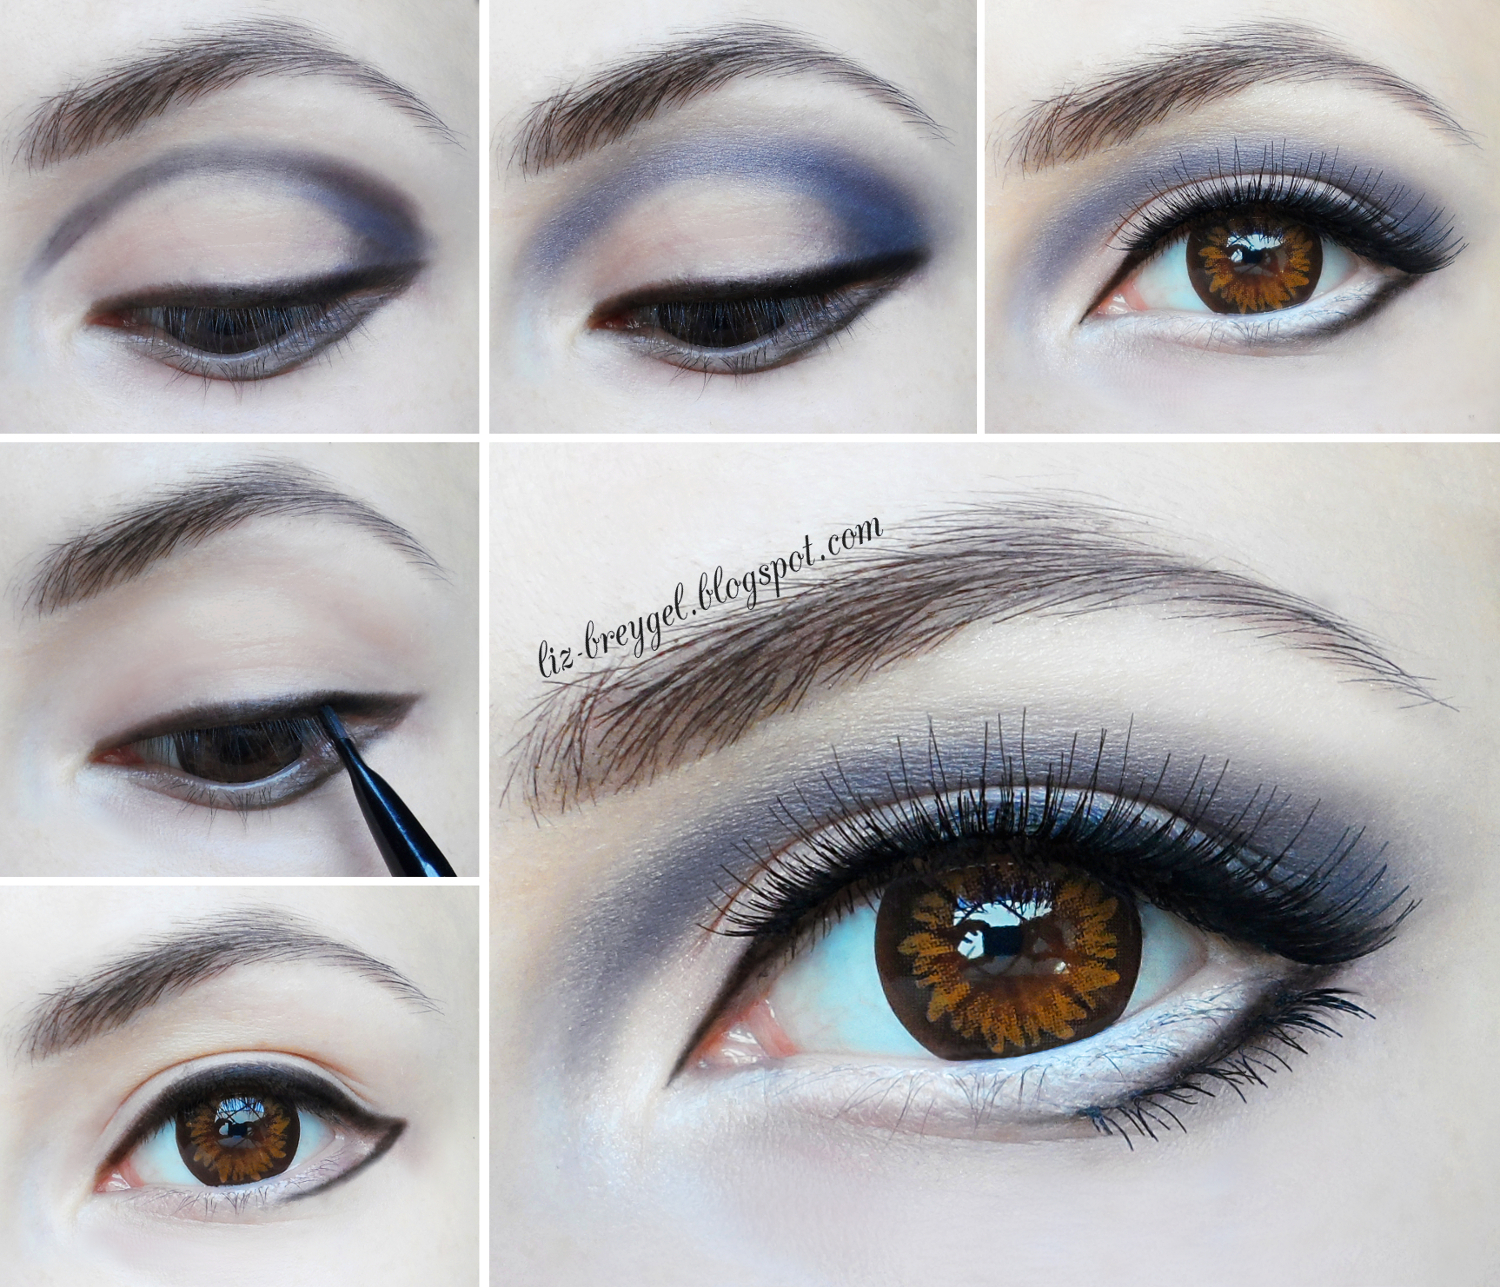 big eye doll makeup - photo #31